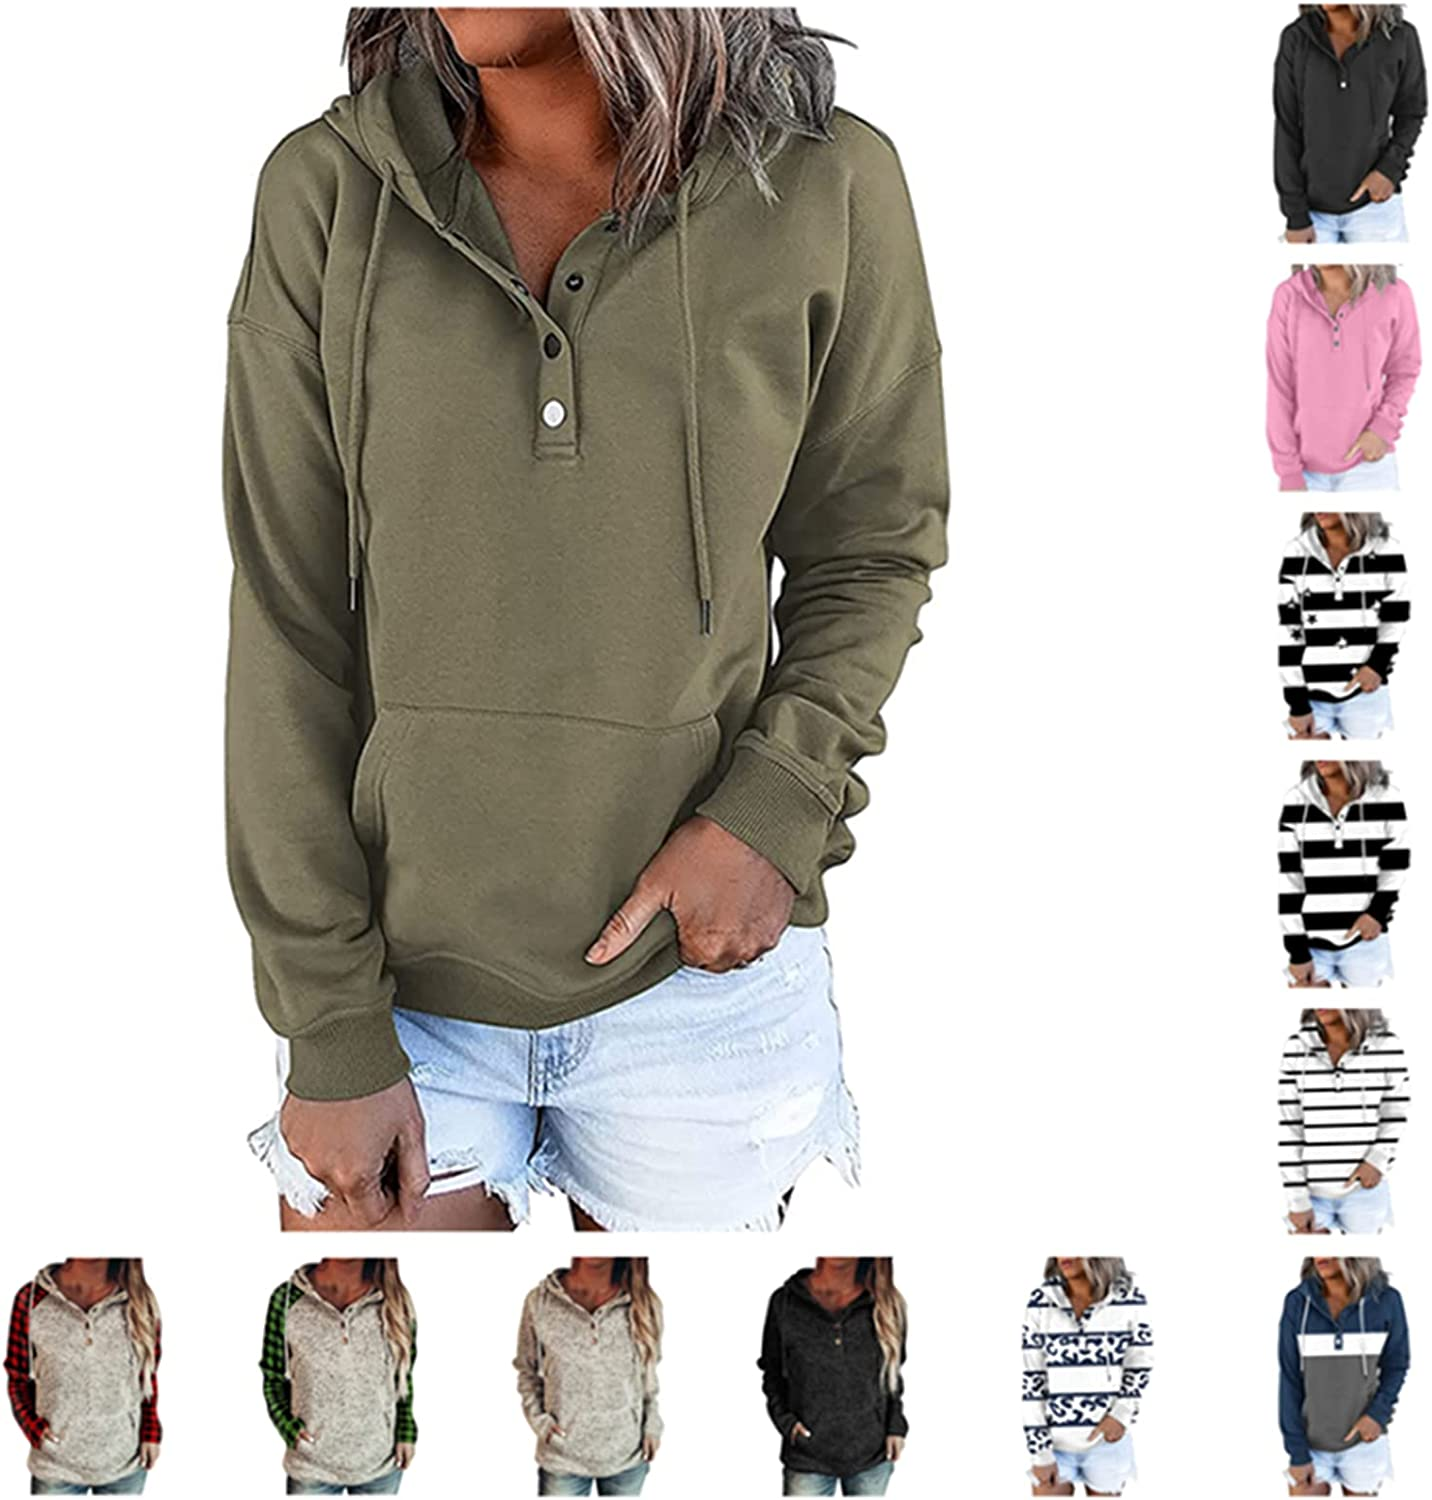 INESVER Sweatshirts for Women Casual Drawstring Hoodies Color Block Pullover Tops Button Down Blouse Hoodie